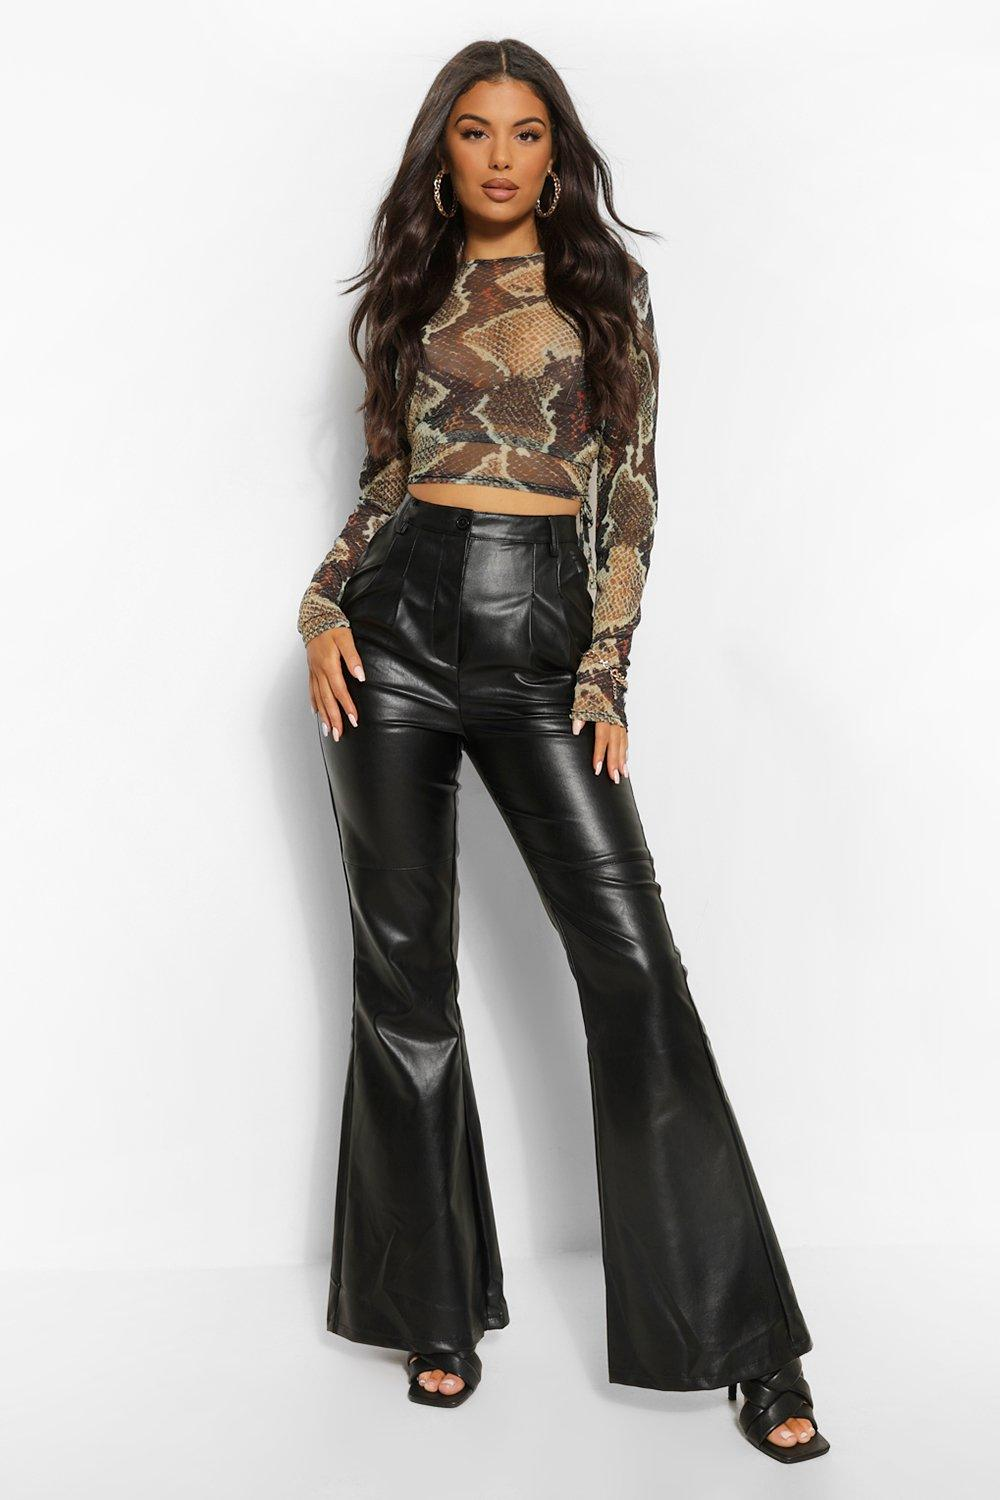 60s – 70s Pants, Jeans, Hippie, Bell Bottoms, Jumpsuits Womens High Waist Leather Look Flare - Black - 12 $24.00 AT vintagedancer.com